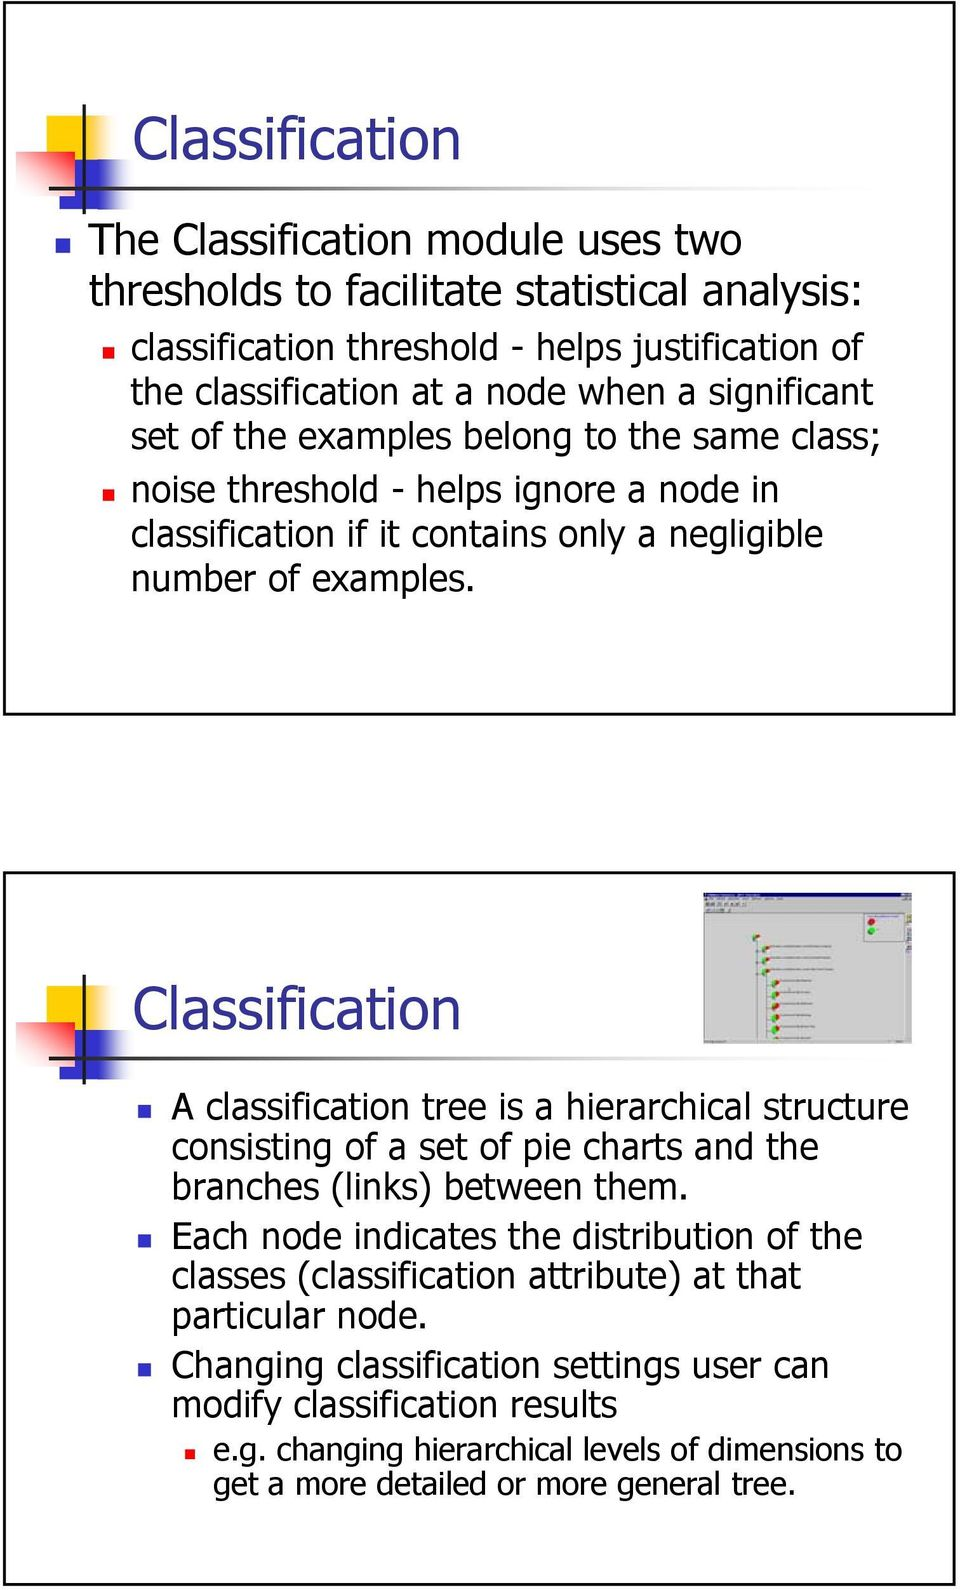 Classification A classification tree is a hierarchical structure consisting of a set of pie charts and the branches (links) between them.